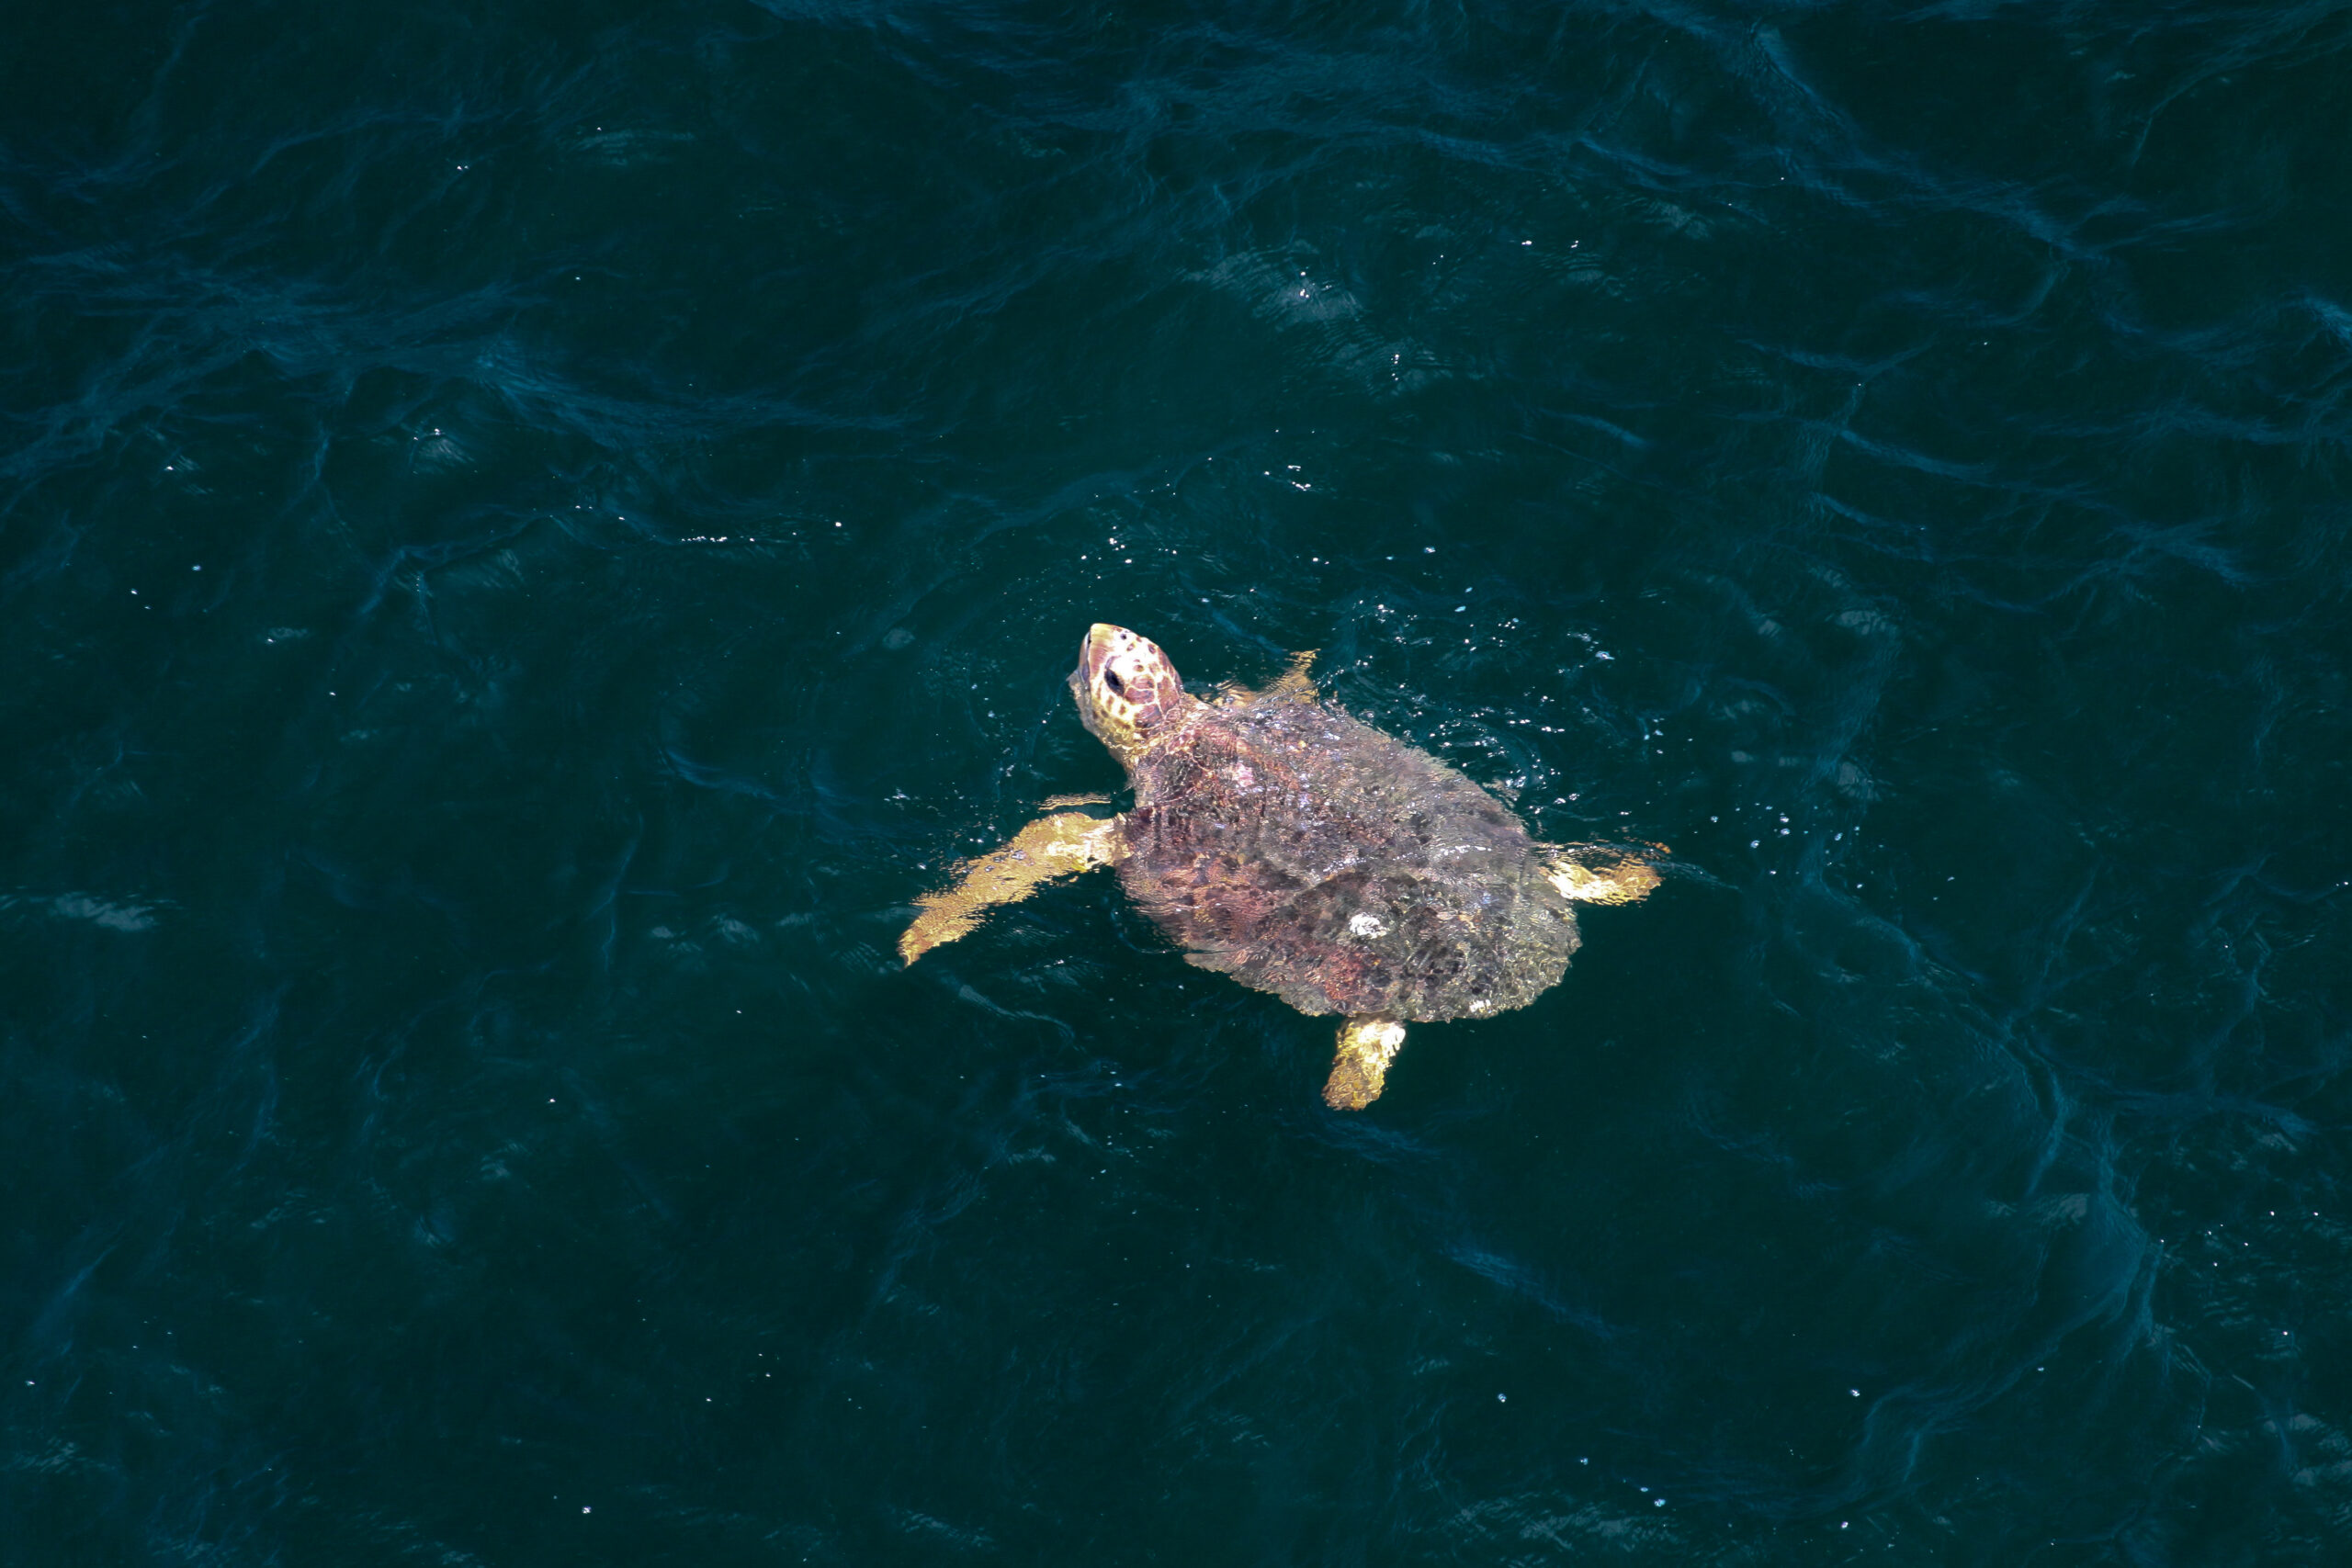 Hawaii Closes Longline Fishery for Interacting with Endangered Sea Turtle Limit